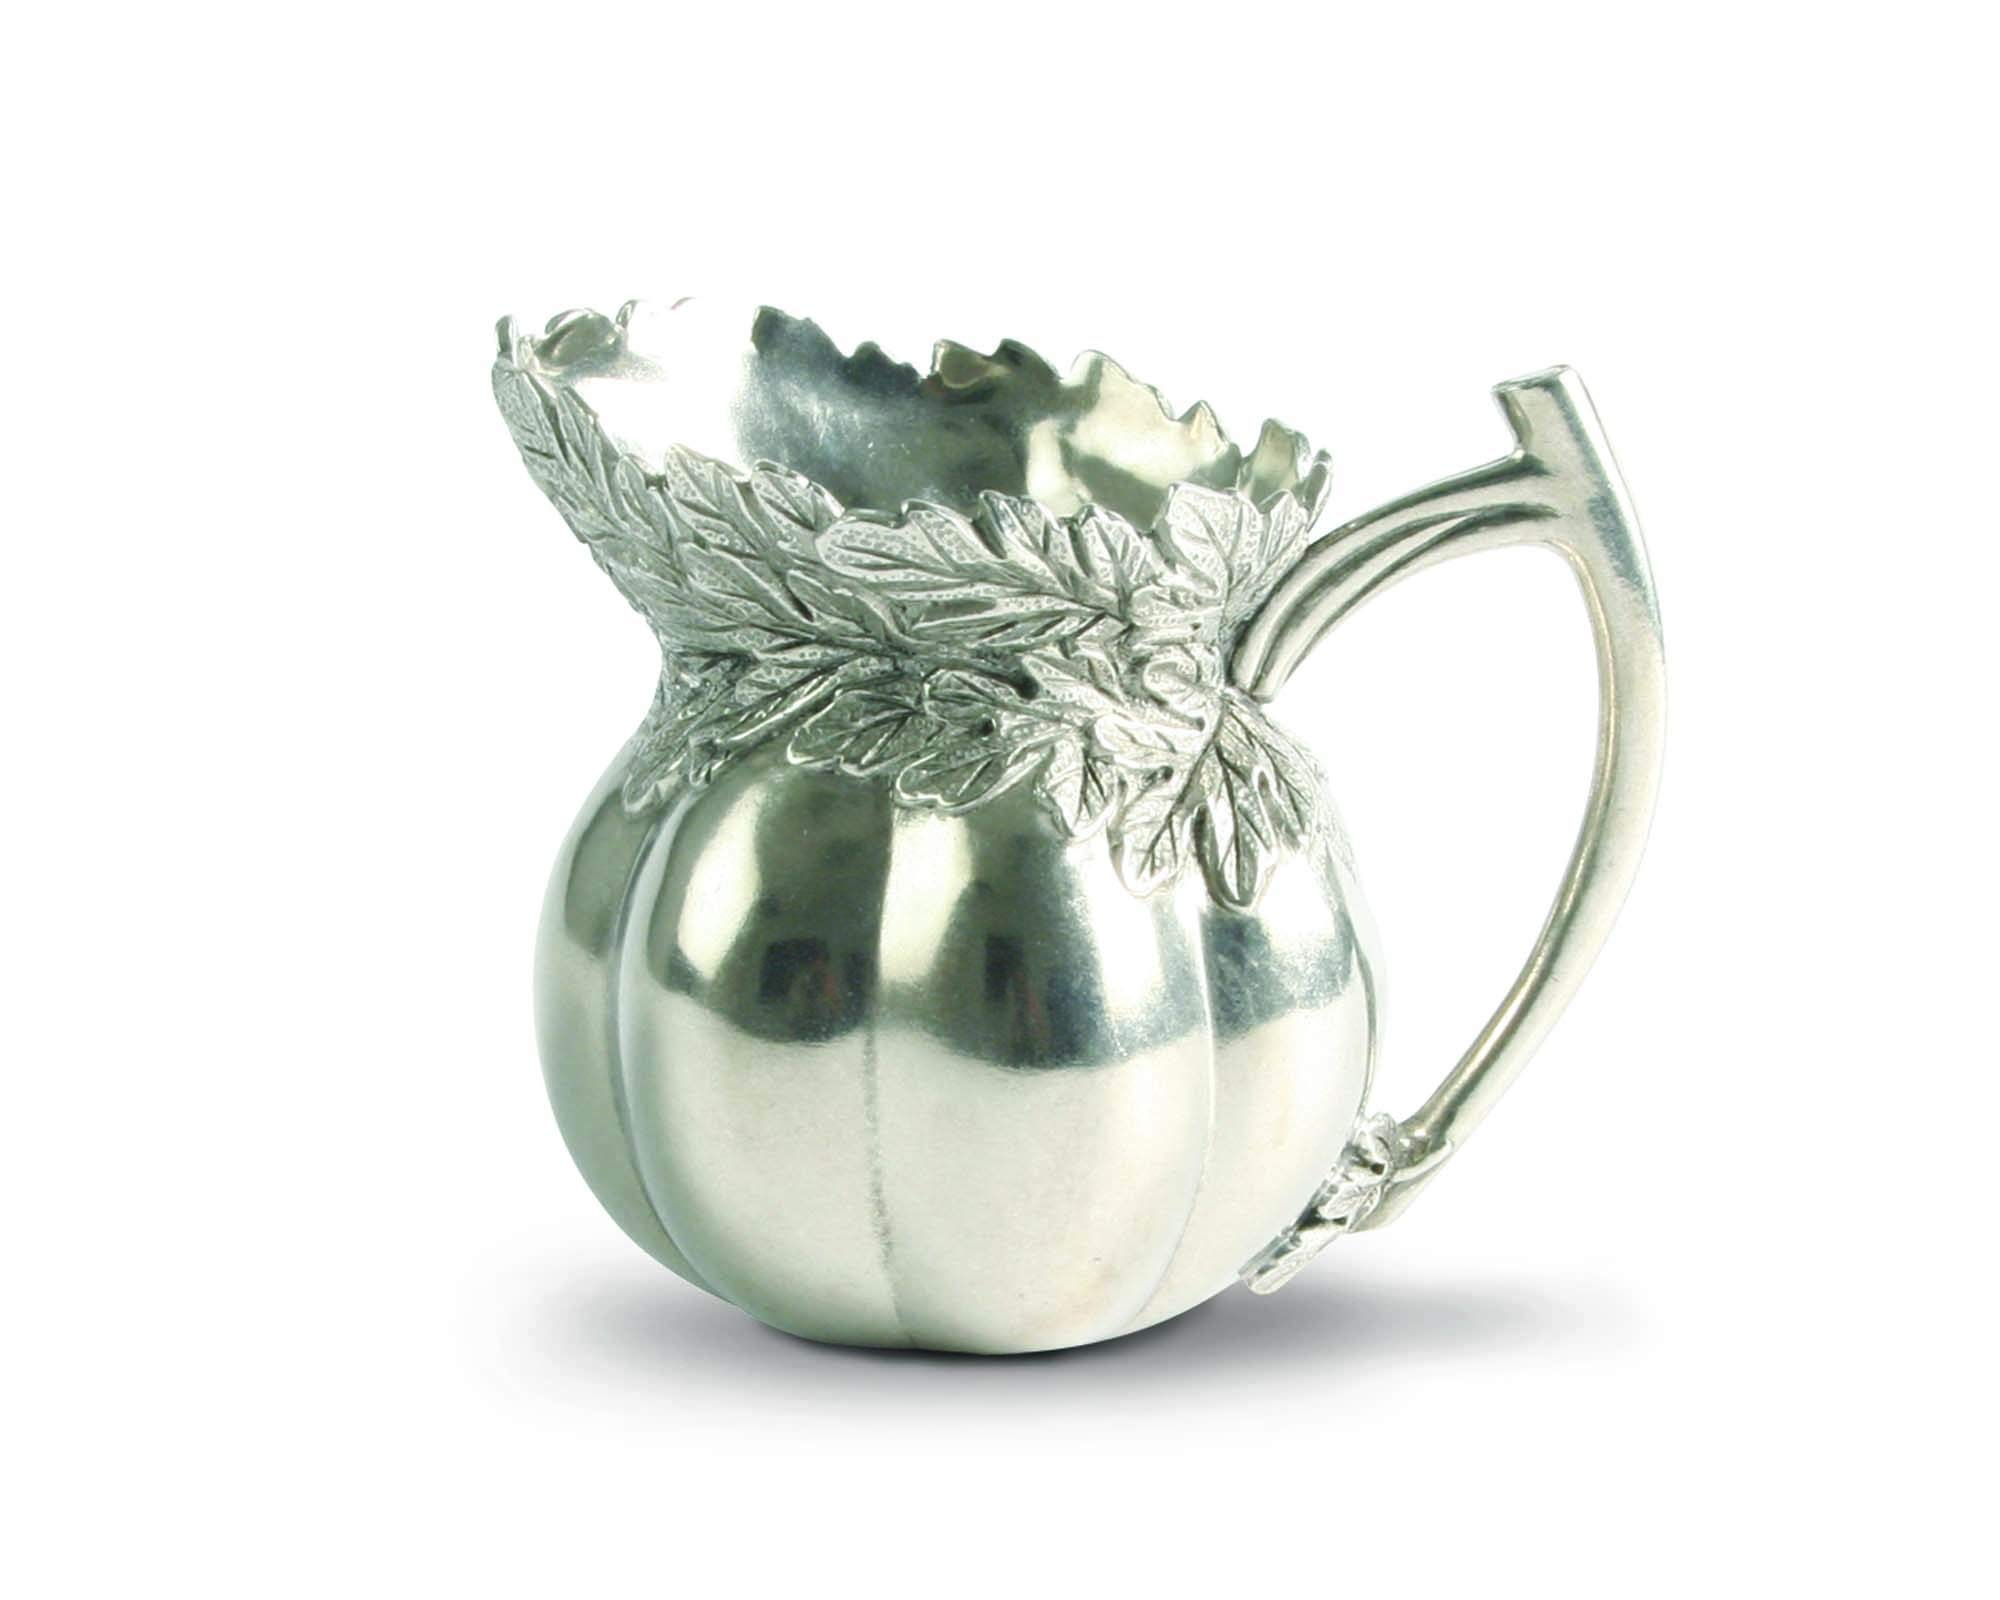 Vagabond House Pewter Heirloom Tomato Small Gravy Sauce Pitcher 4.25'' Tall